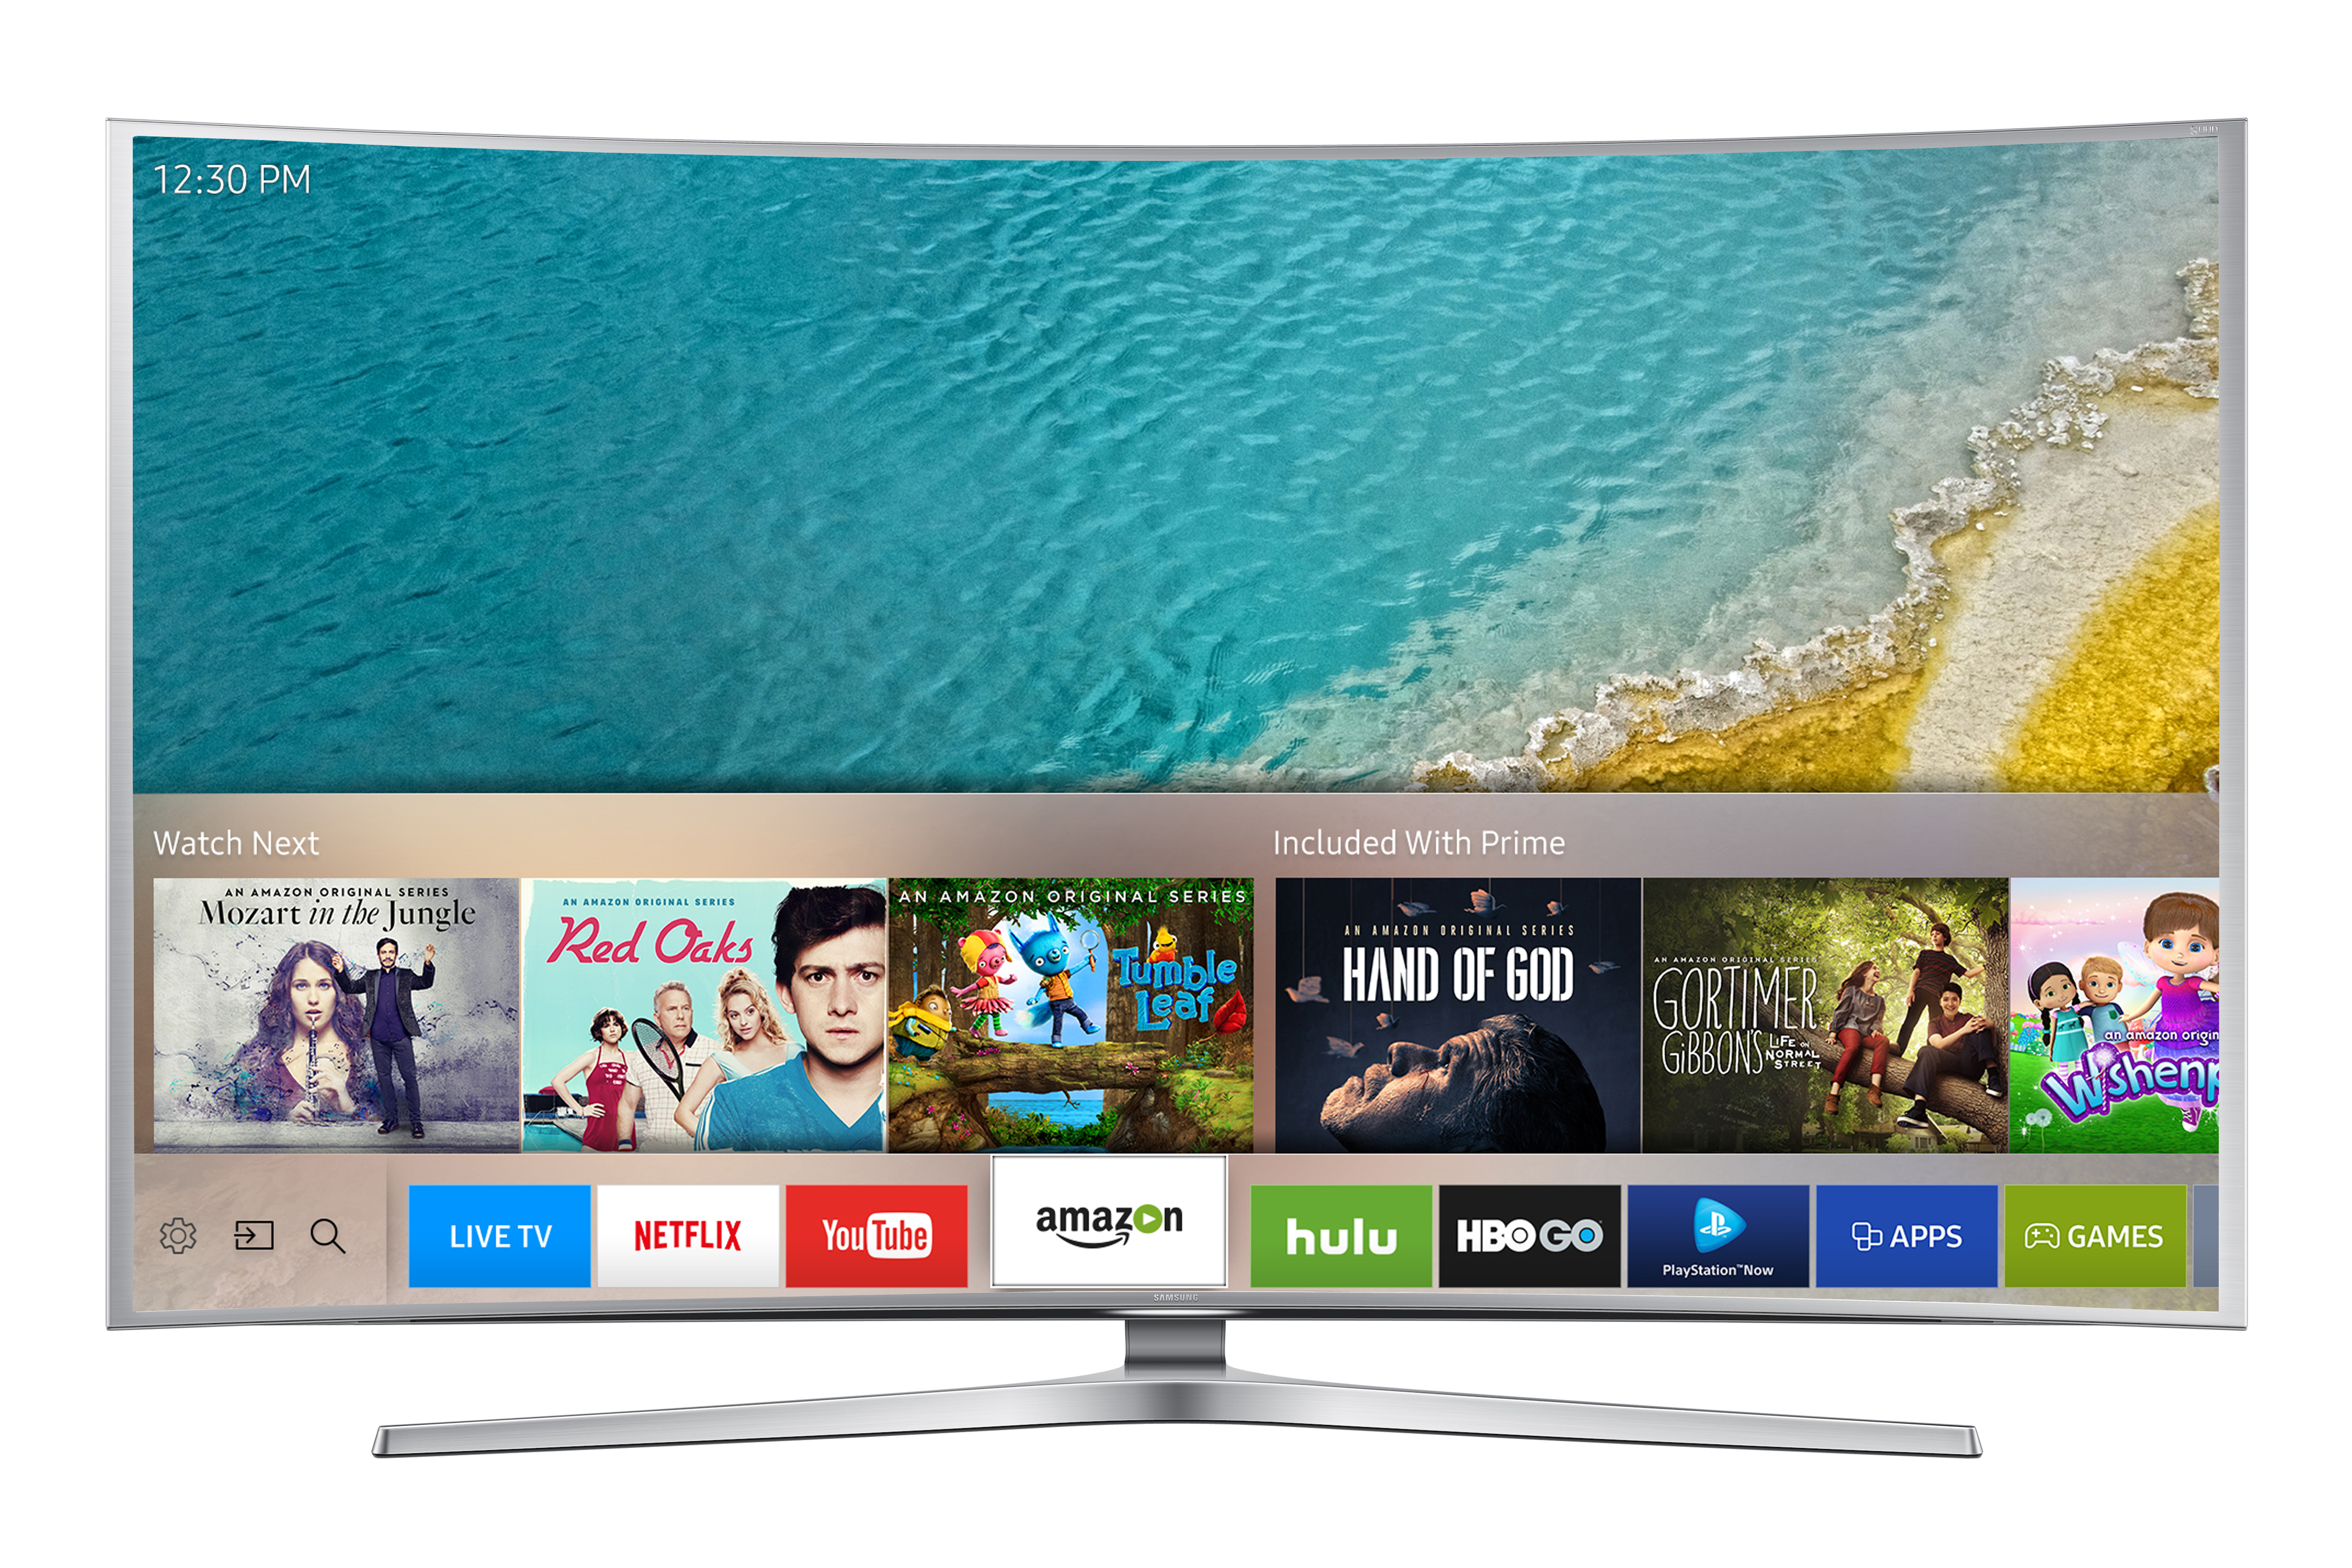 Samsung Electronics Introduces New Smart TV User Experience | Business Wire